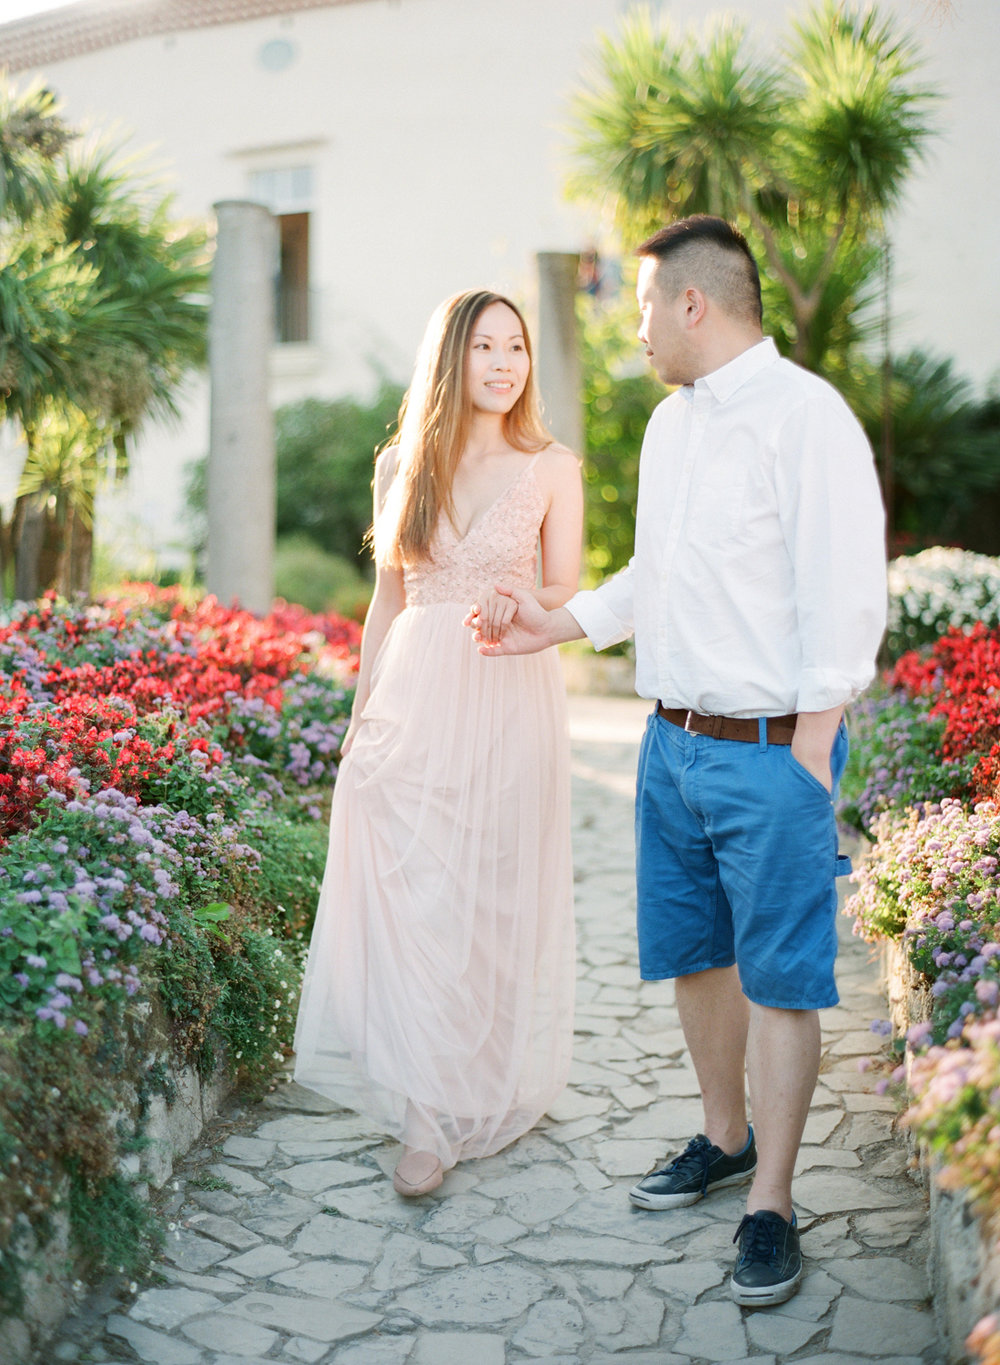 ravello wedding photographer amalfi coast wedding nikol bodnarova film wedding photographer_13.JPG